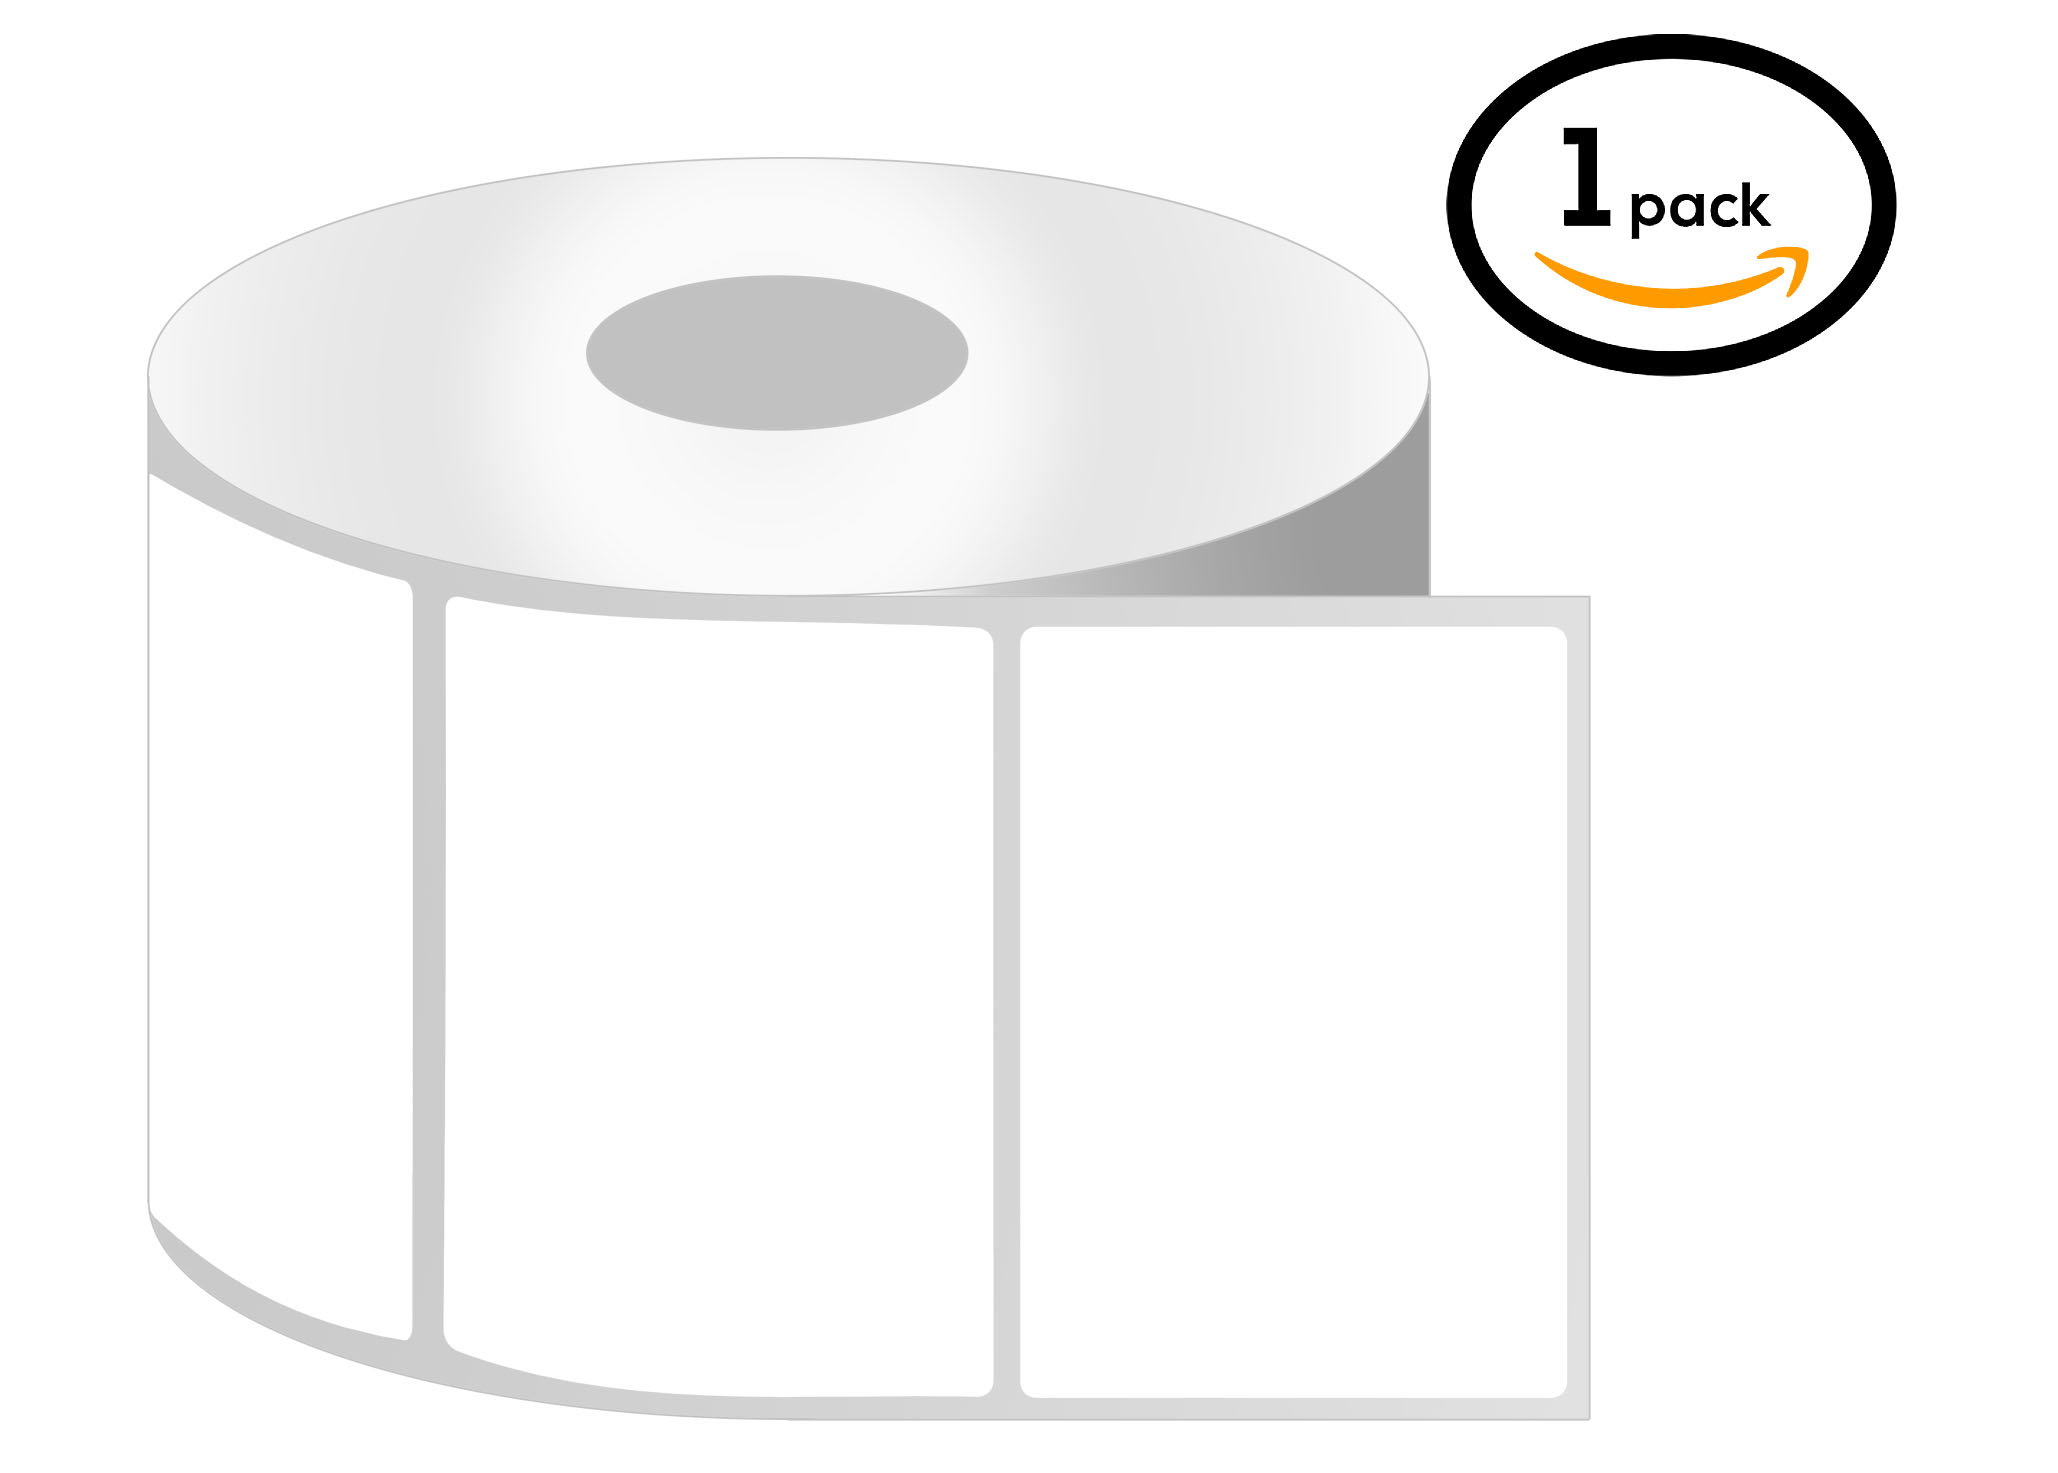 1 Inch Core - 3 x 1.5 Zebra Compatible Direct Thermal Labels 1 Roll